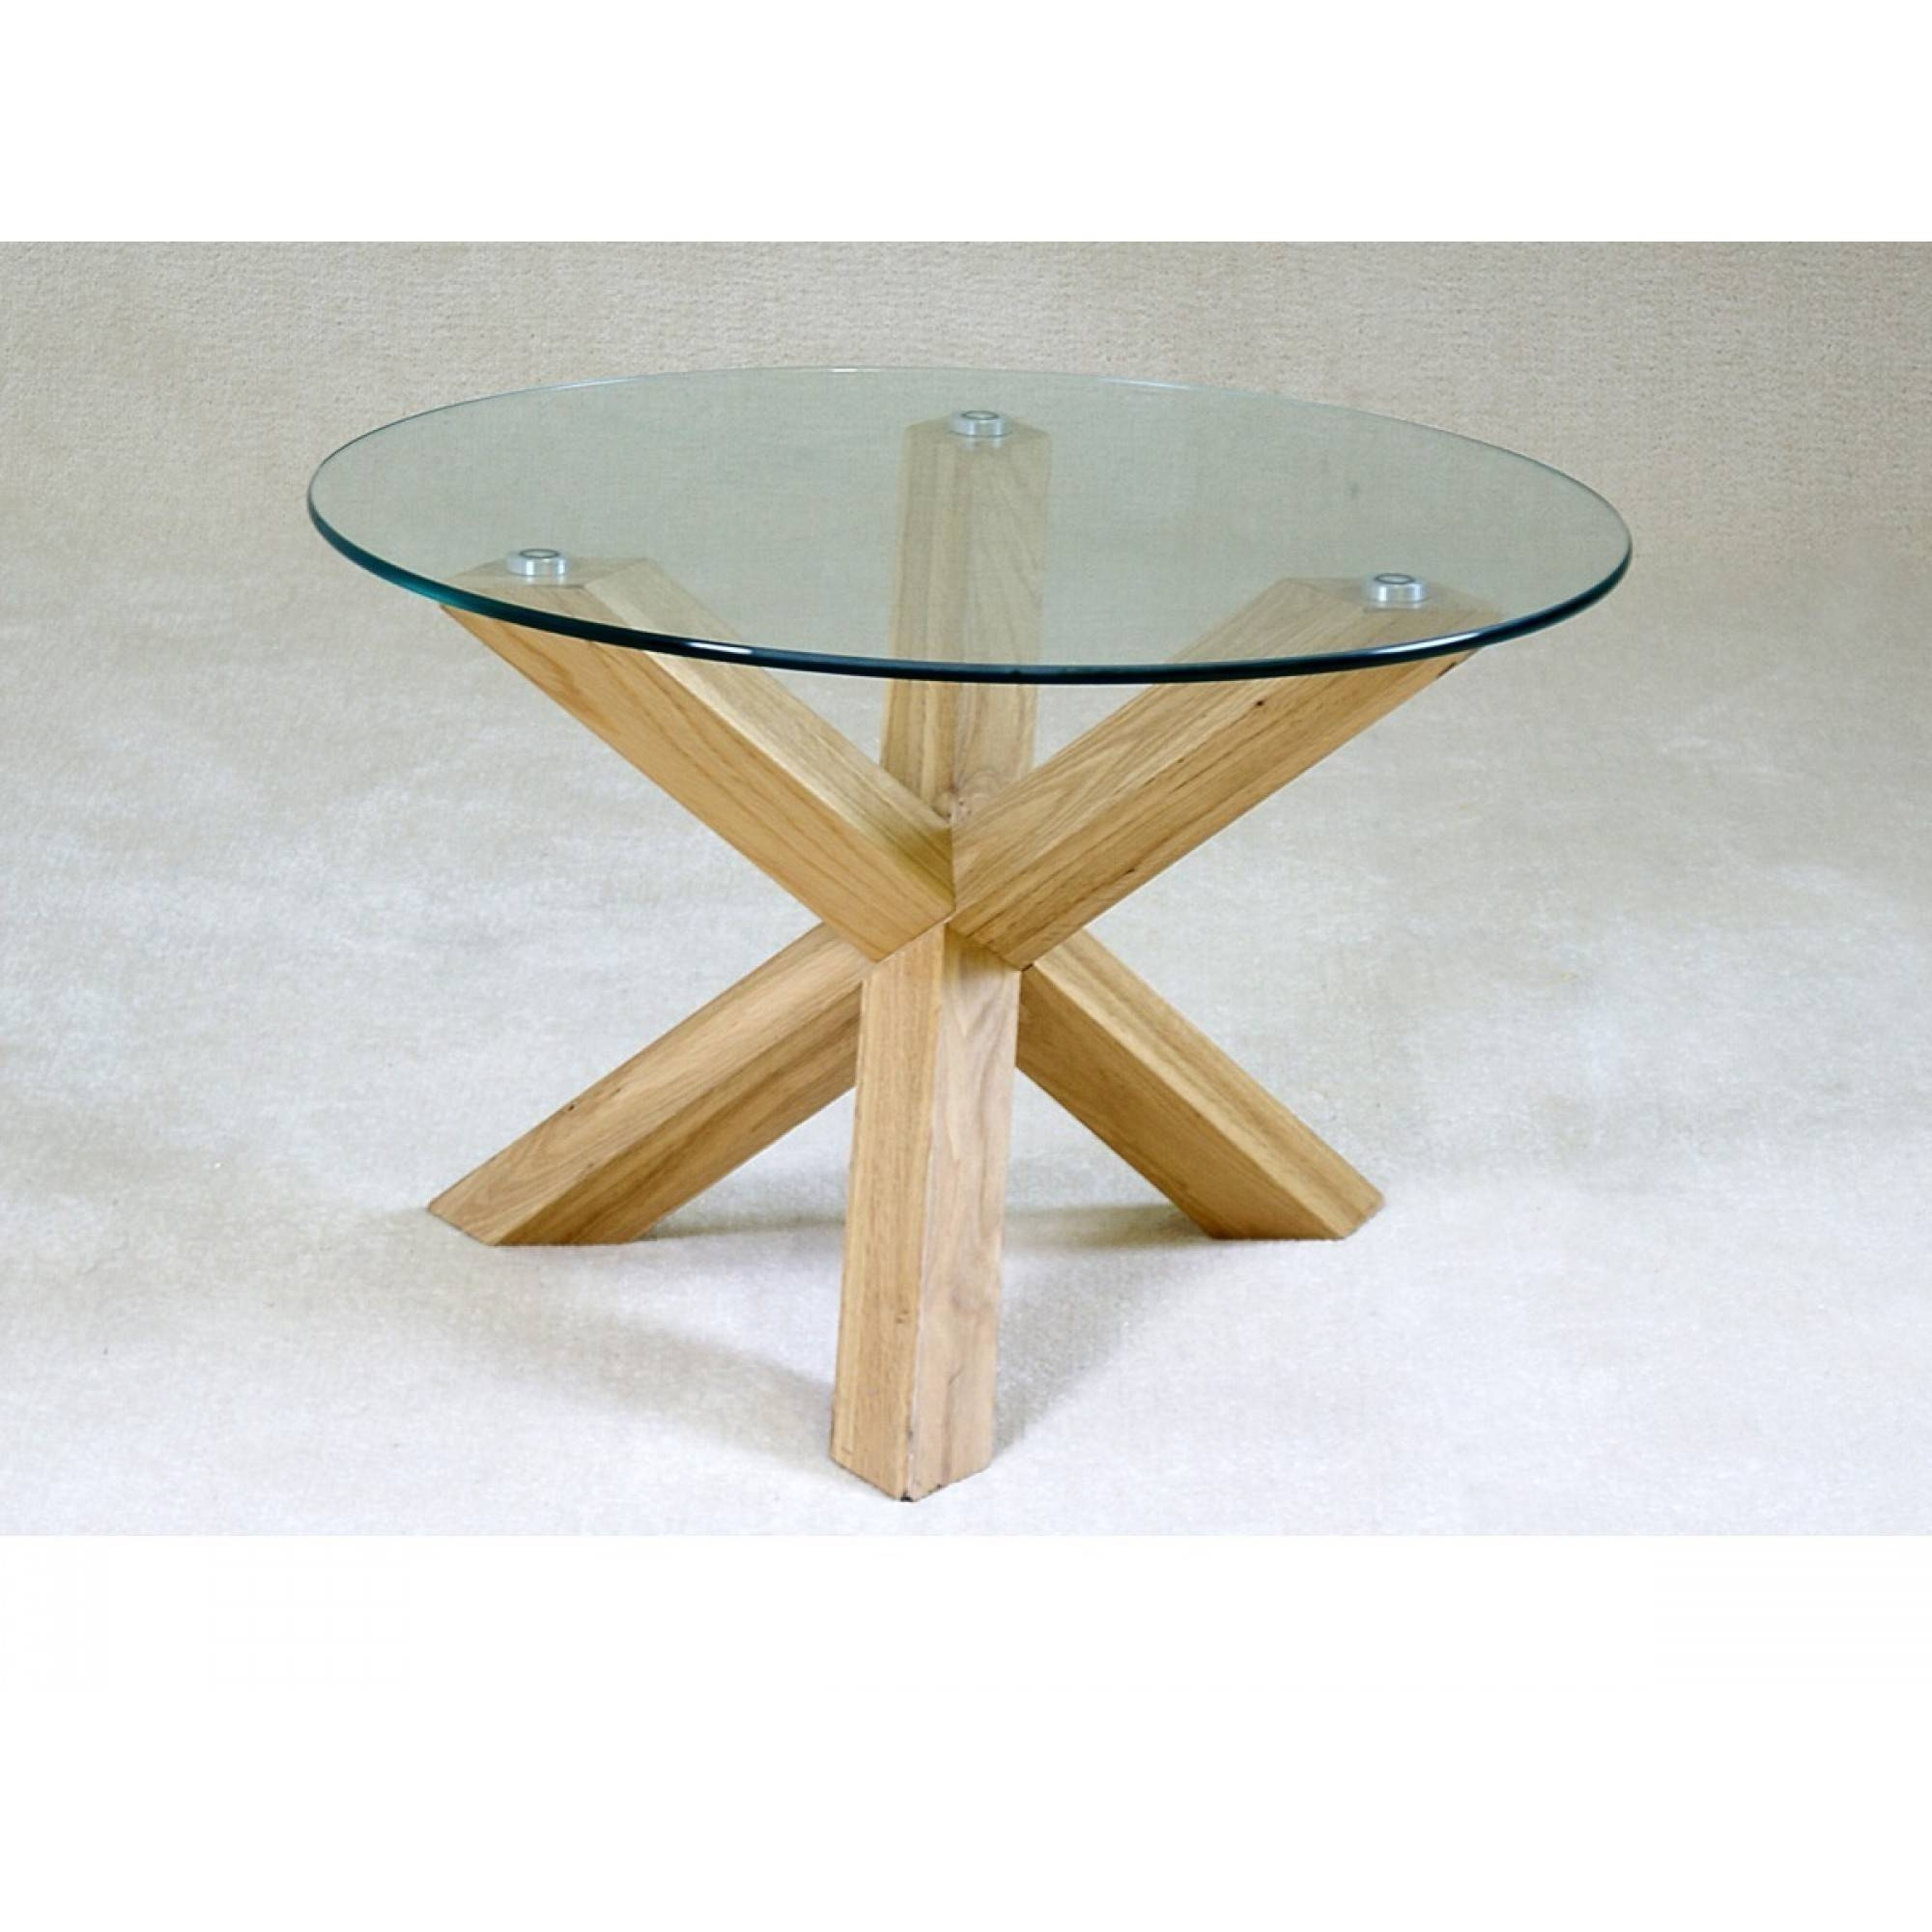 15 Collection of Glass Oak Coffee Tables